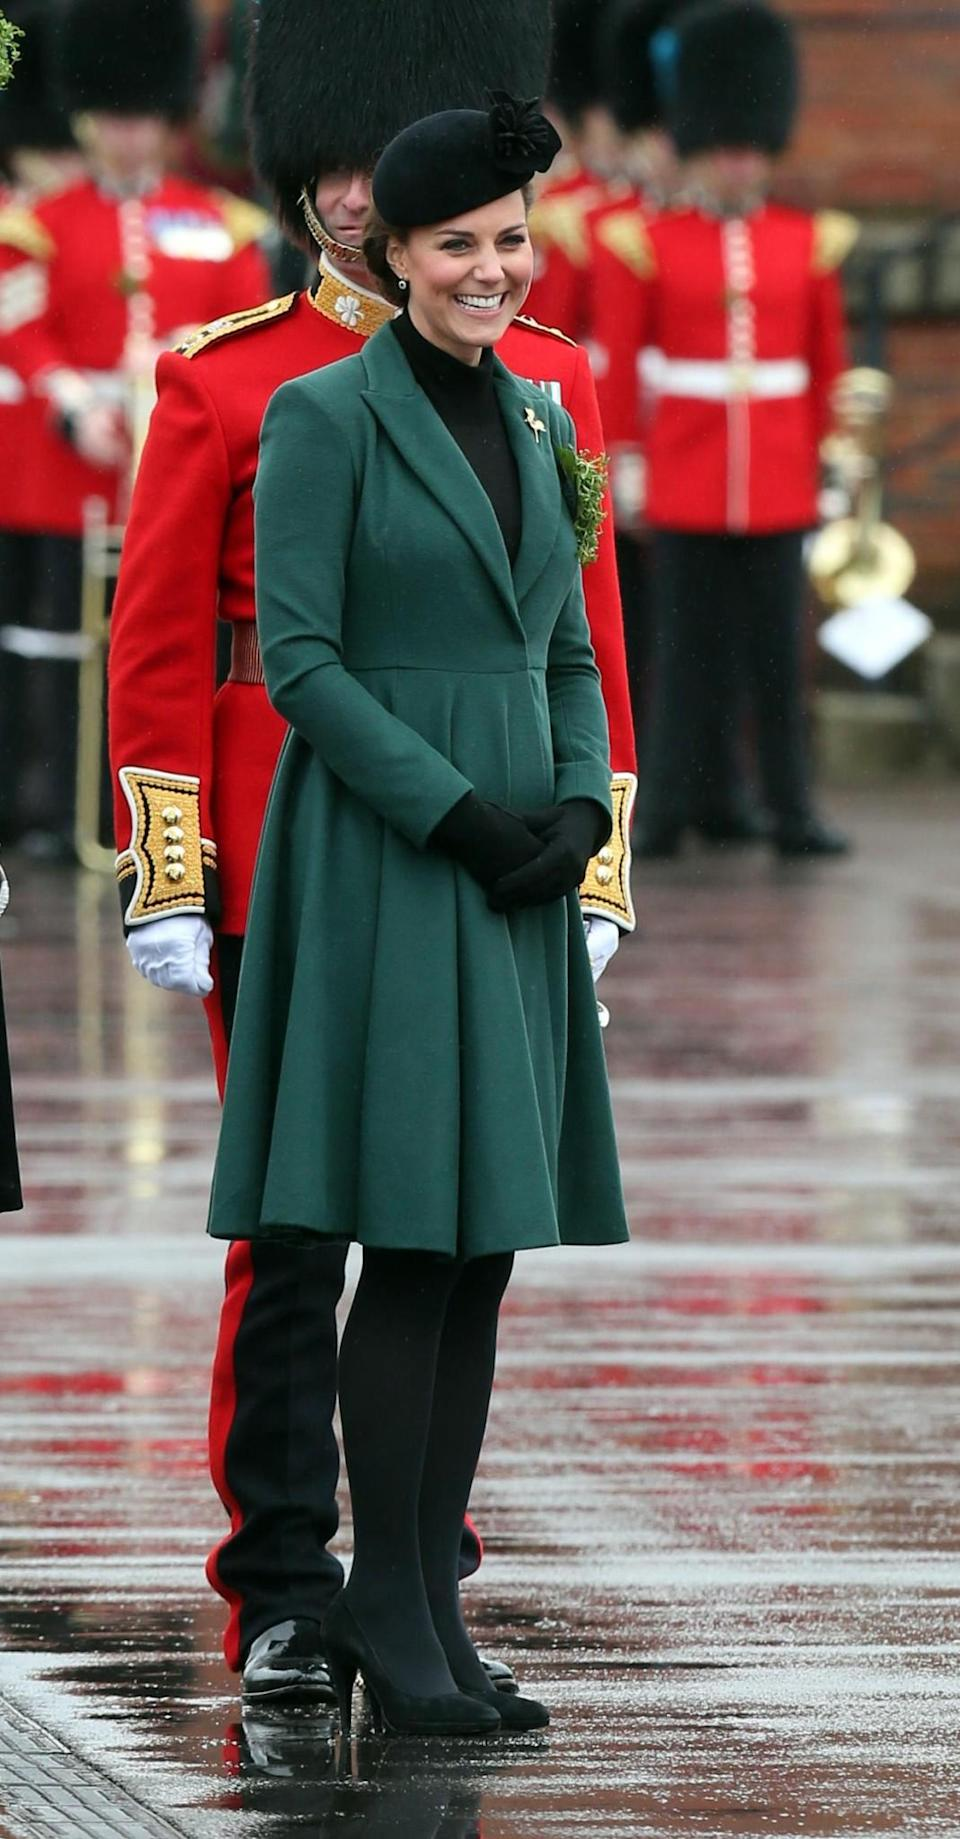 <p>In 2013, despite being pregnant with Prince George, Kate slipped into the same Emilia Wickstead coat she had worn the year before. She layered the look with a black high neck top, and accessorised with a black hat and Emmy London pumps. <em>[Photo: PA]</em> </p>